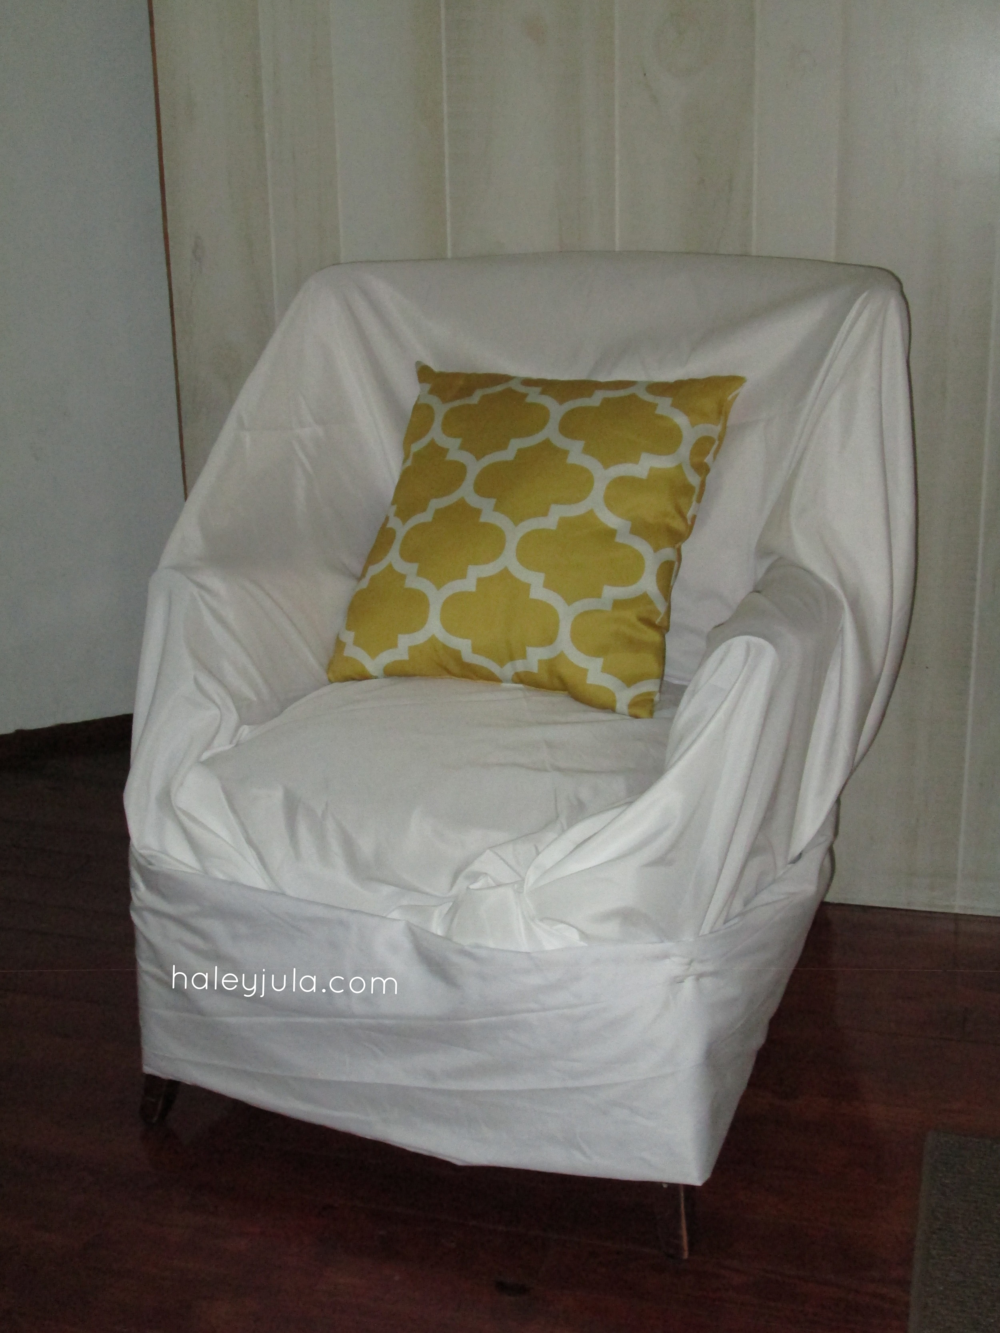 Slipcover a chair with flat sheets. That's what I did here!